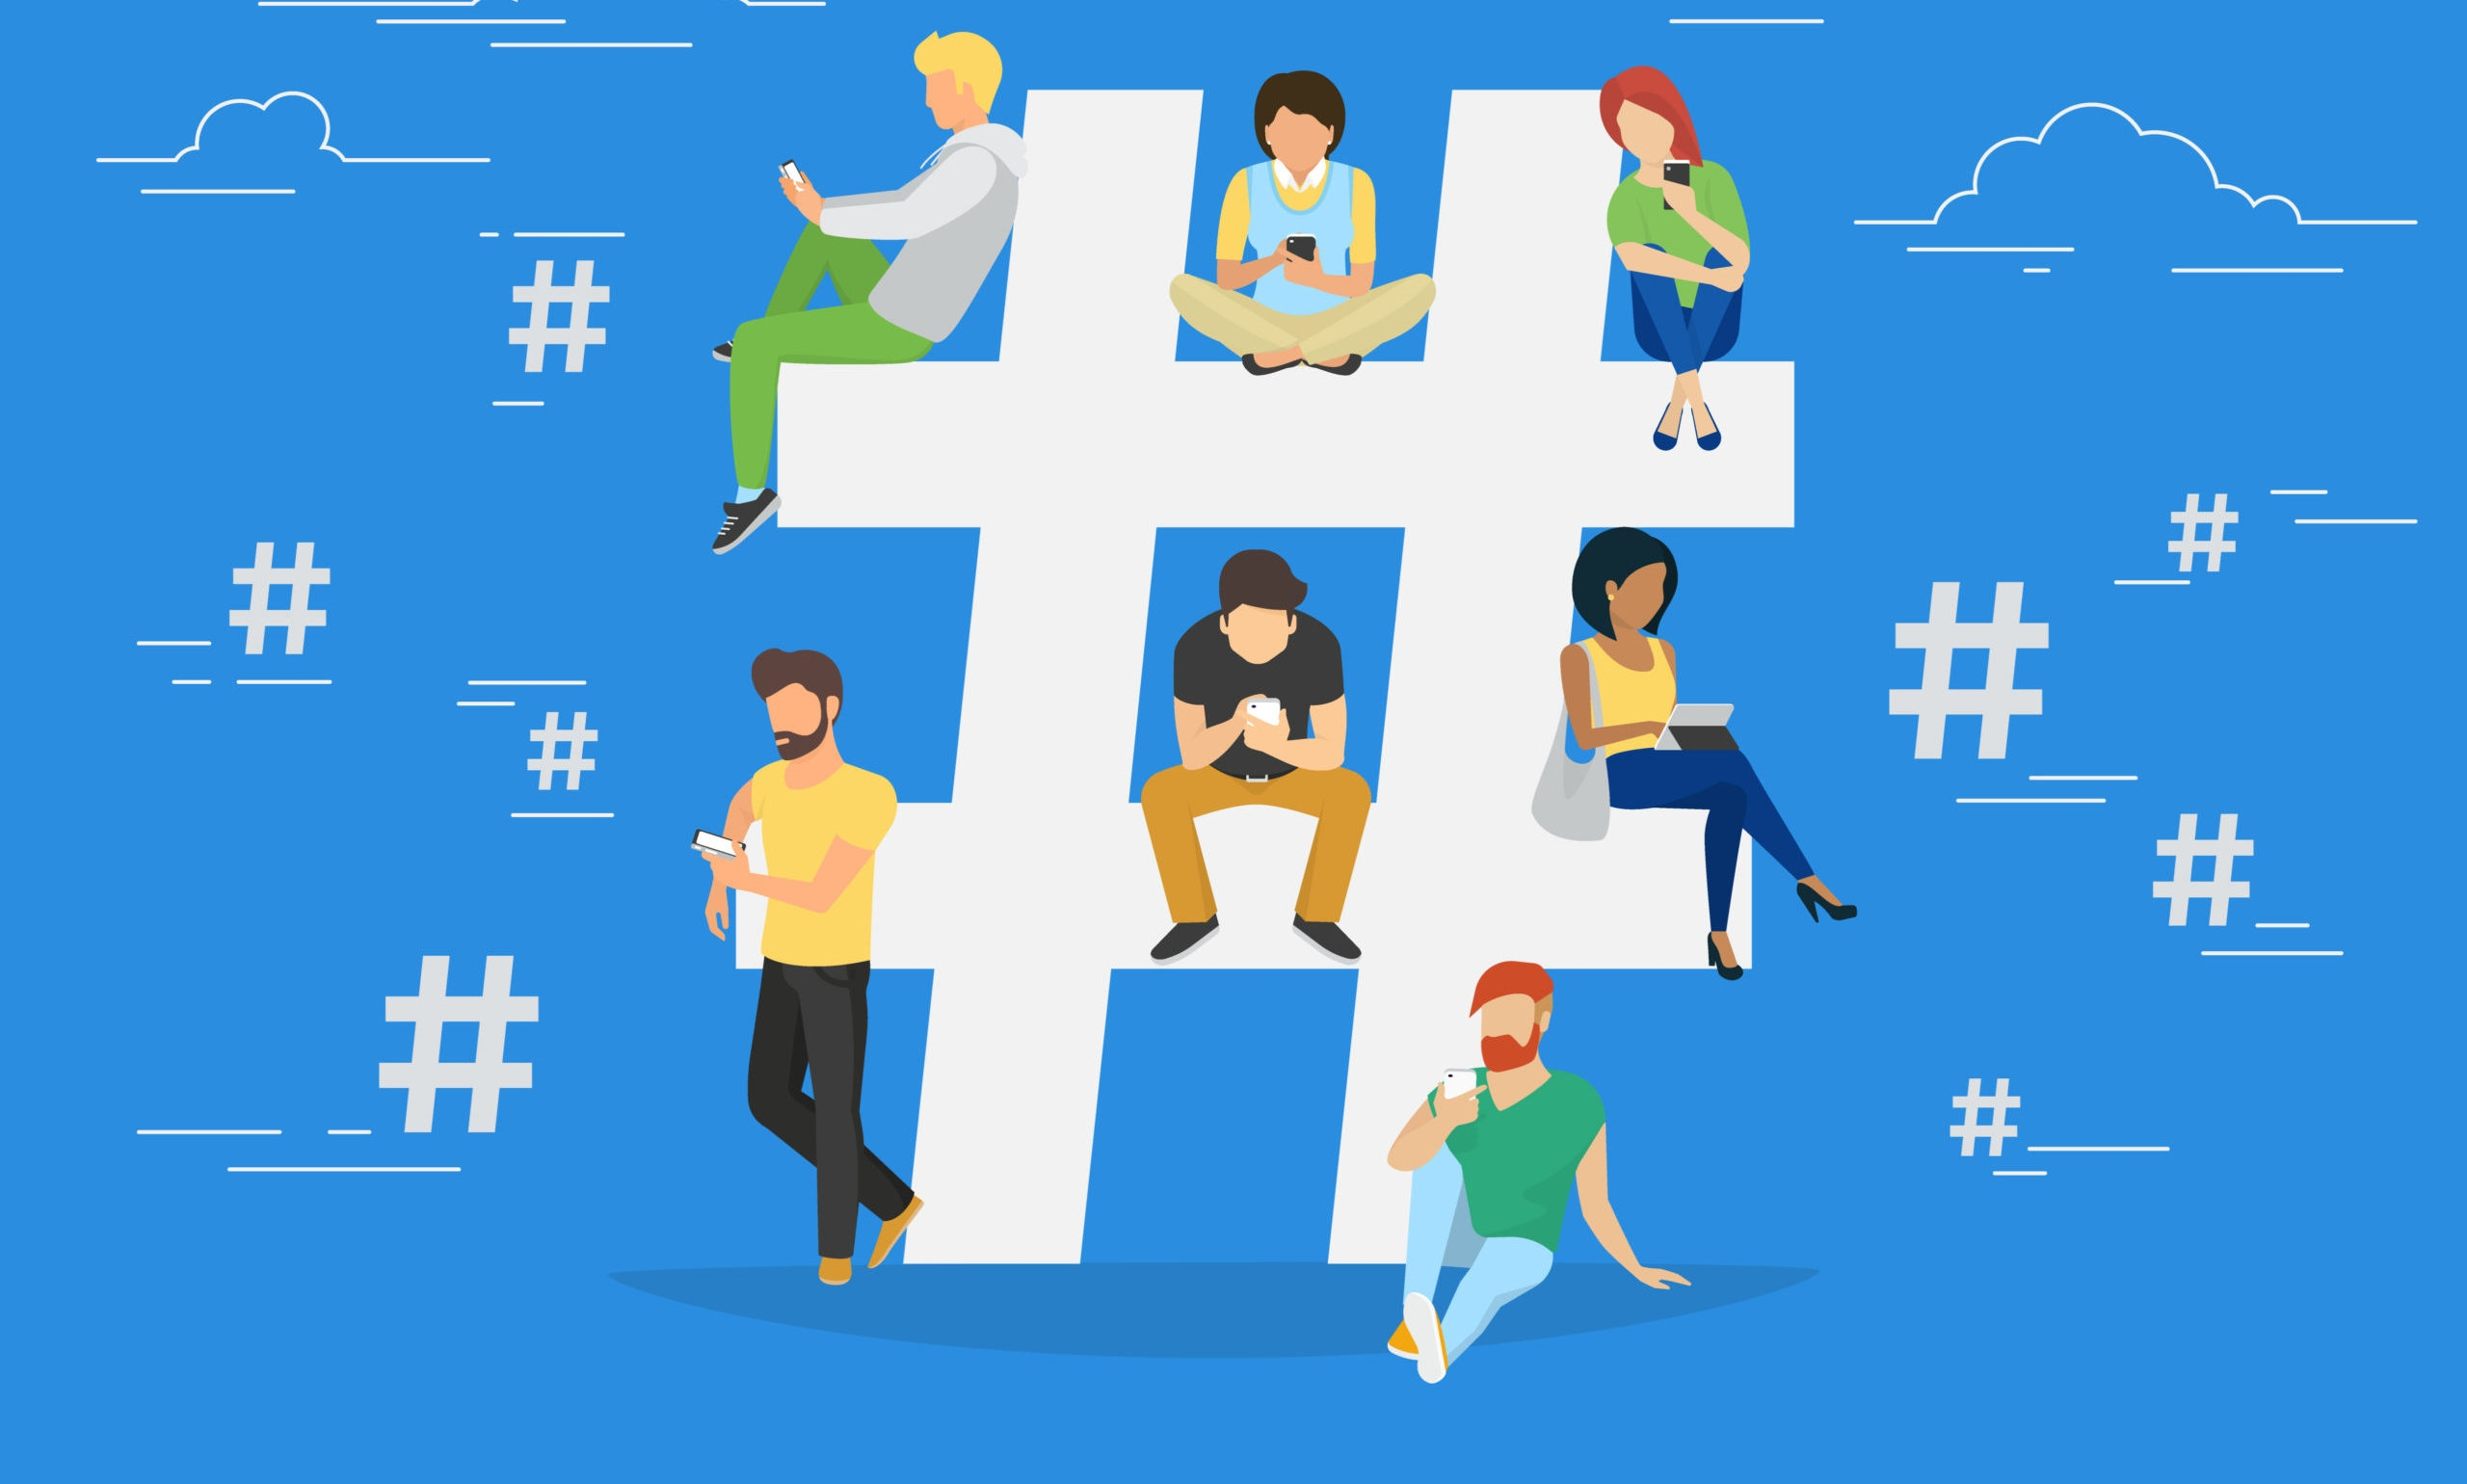 How Important are Hashtags to Social Media Marketing?